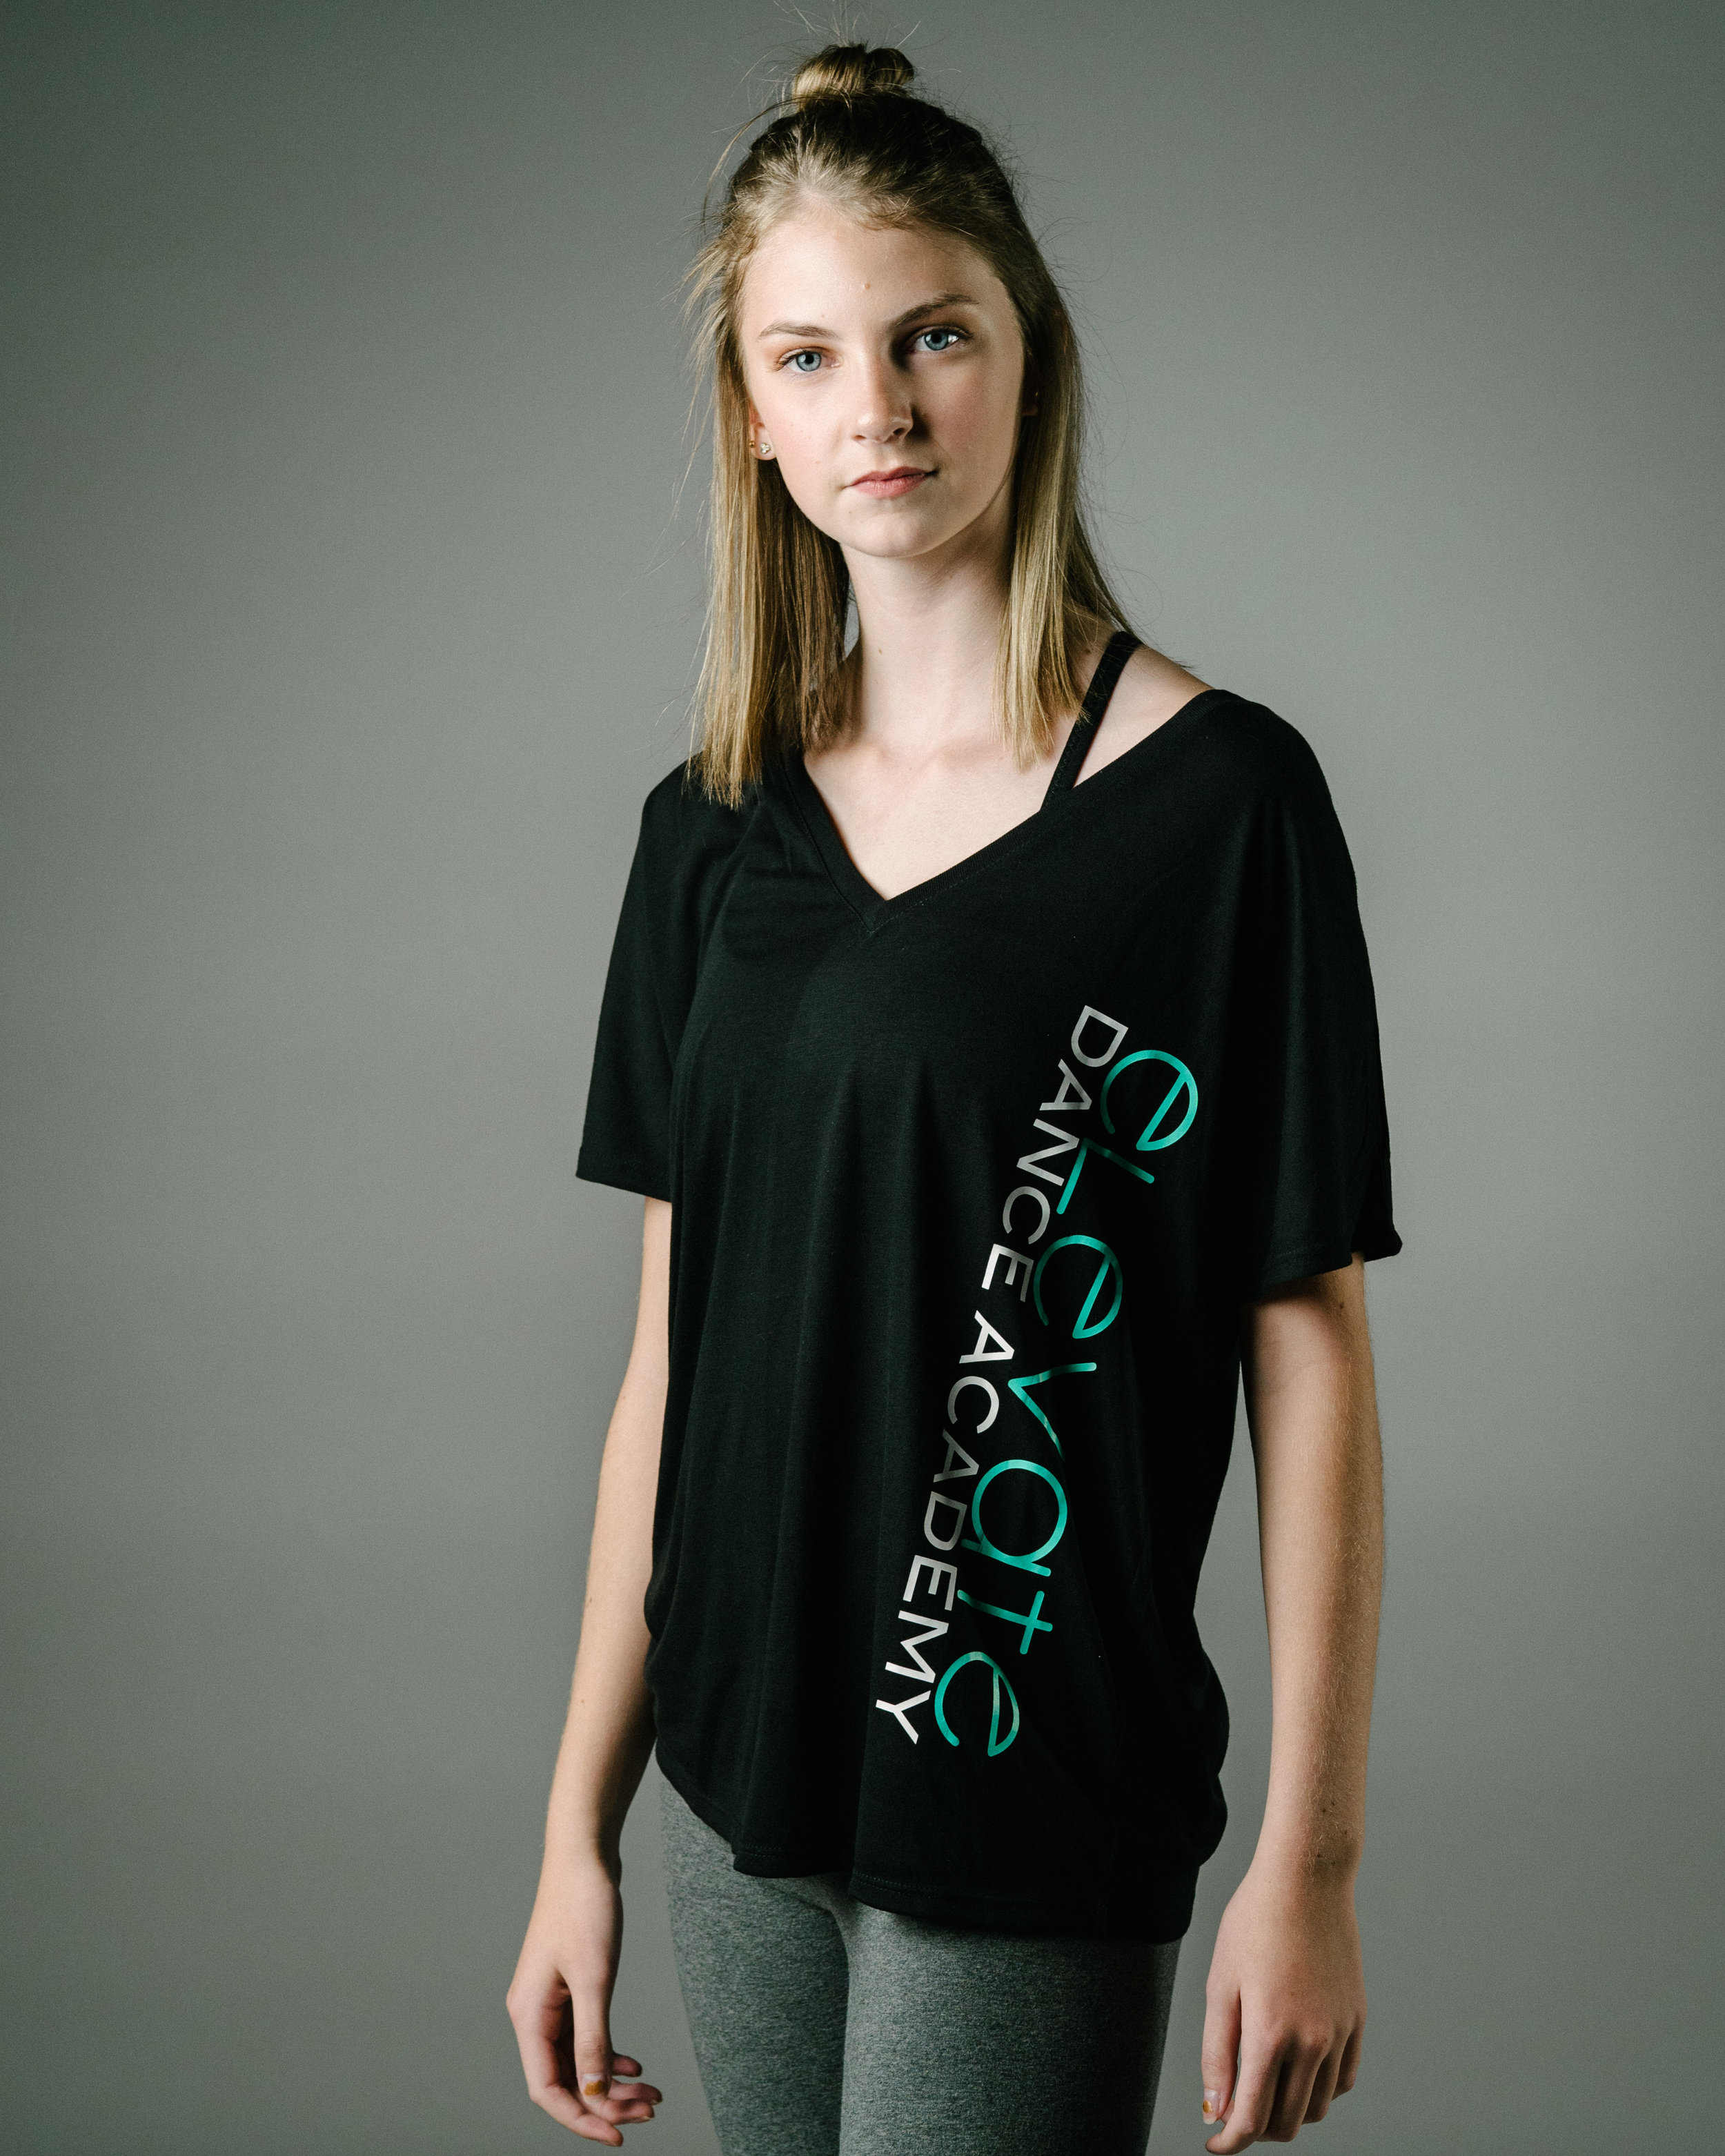 Slouchy Black V-Neck T-Shirt (Elevate logo down the left side)